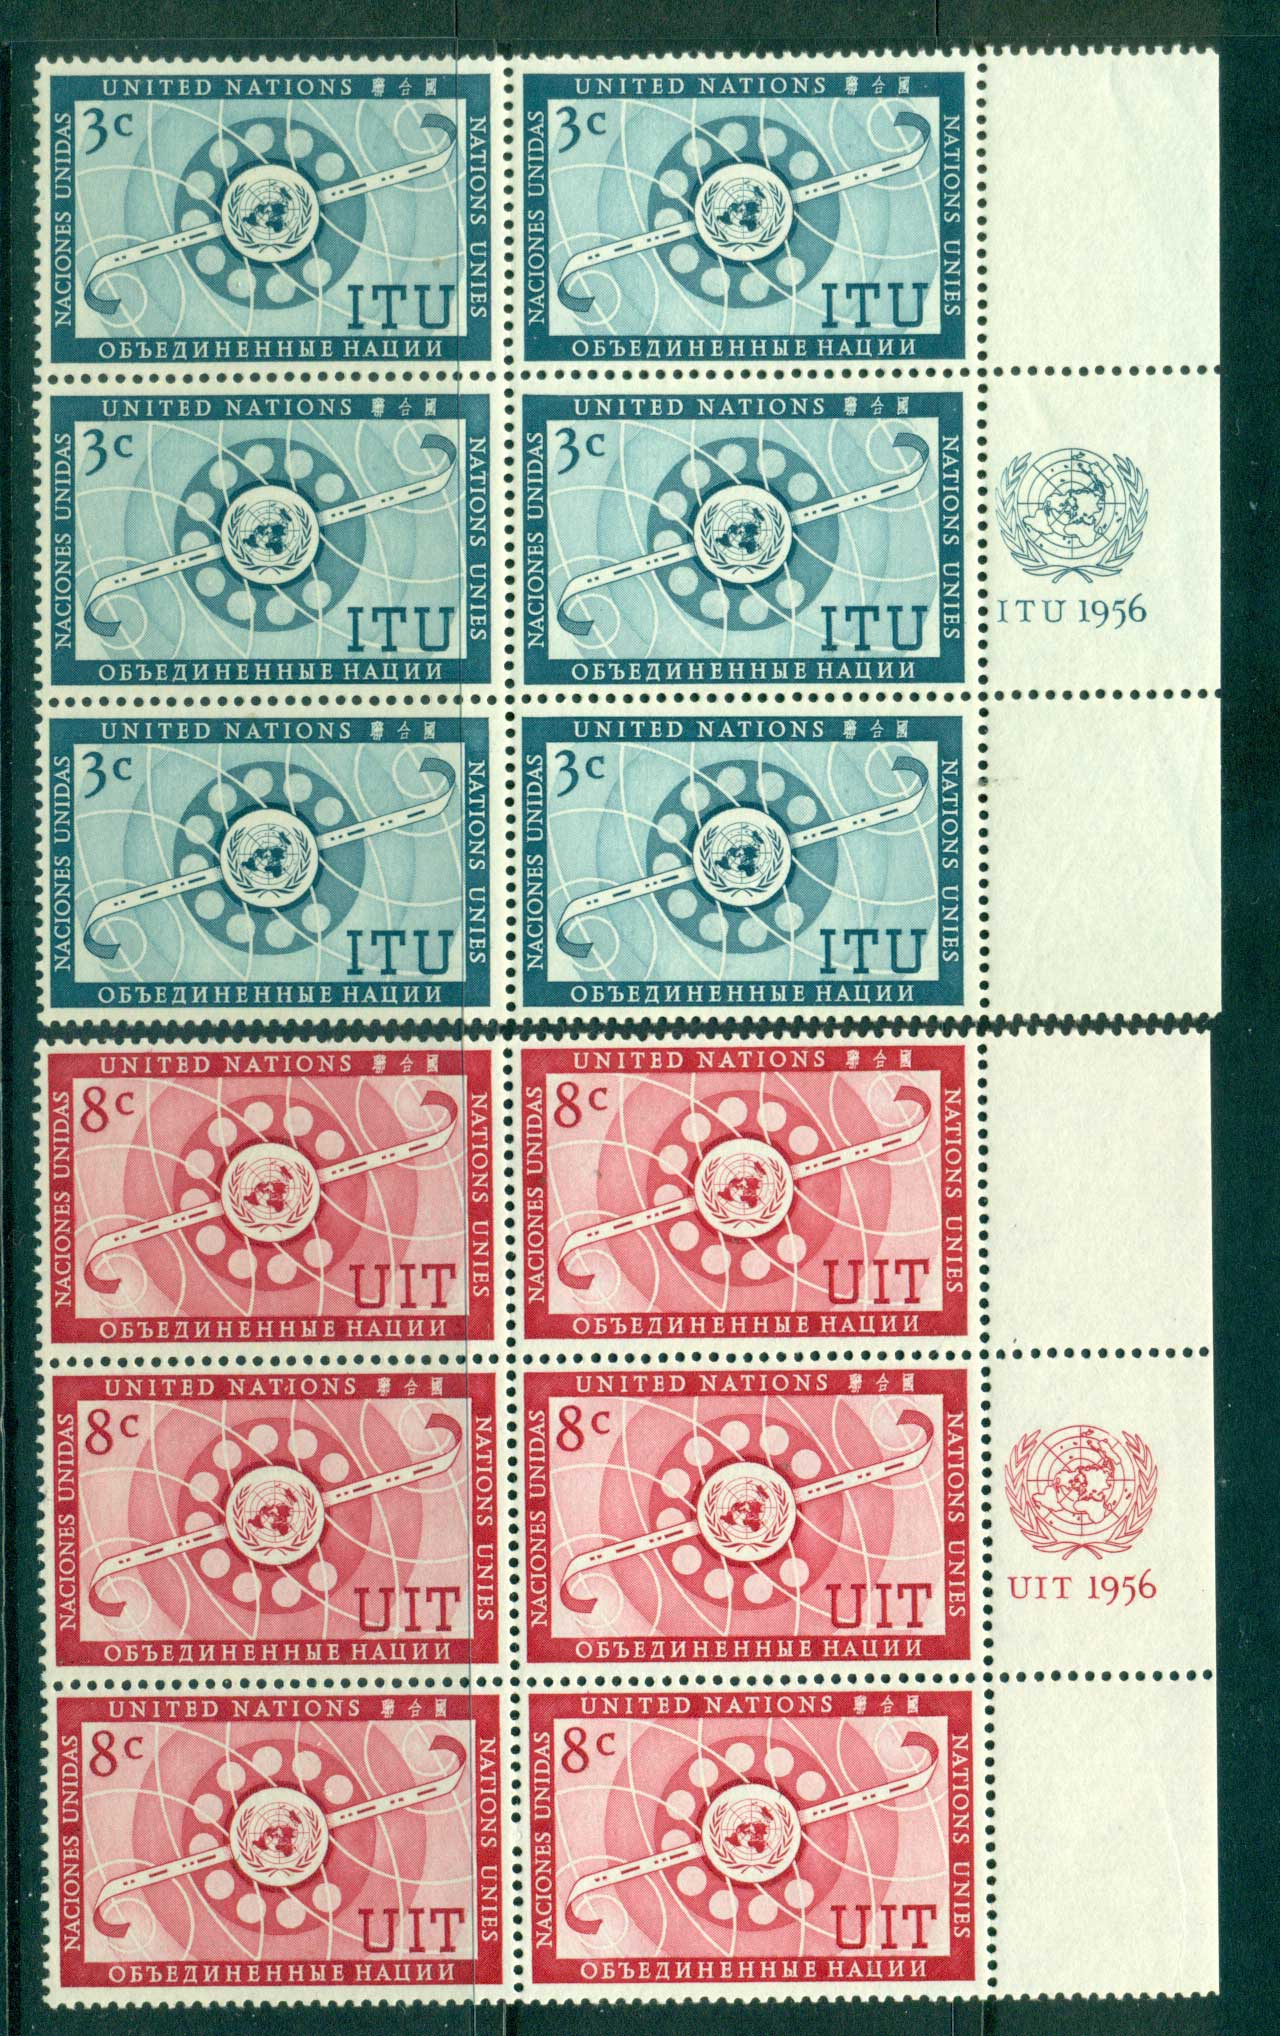 UN New York 1956 Honouring the ITU Imprint Blk 6 MUH lot40884